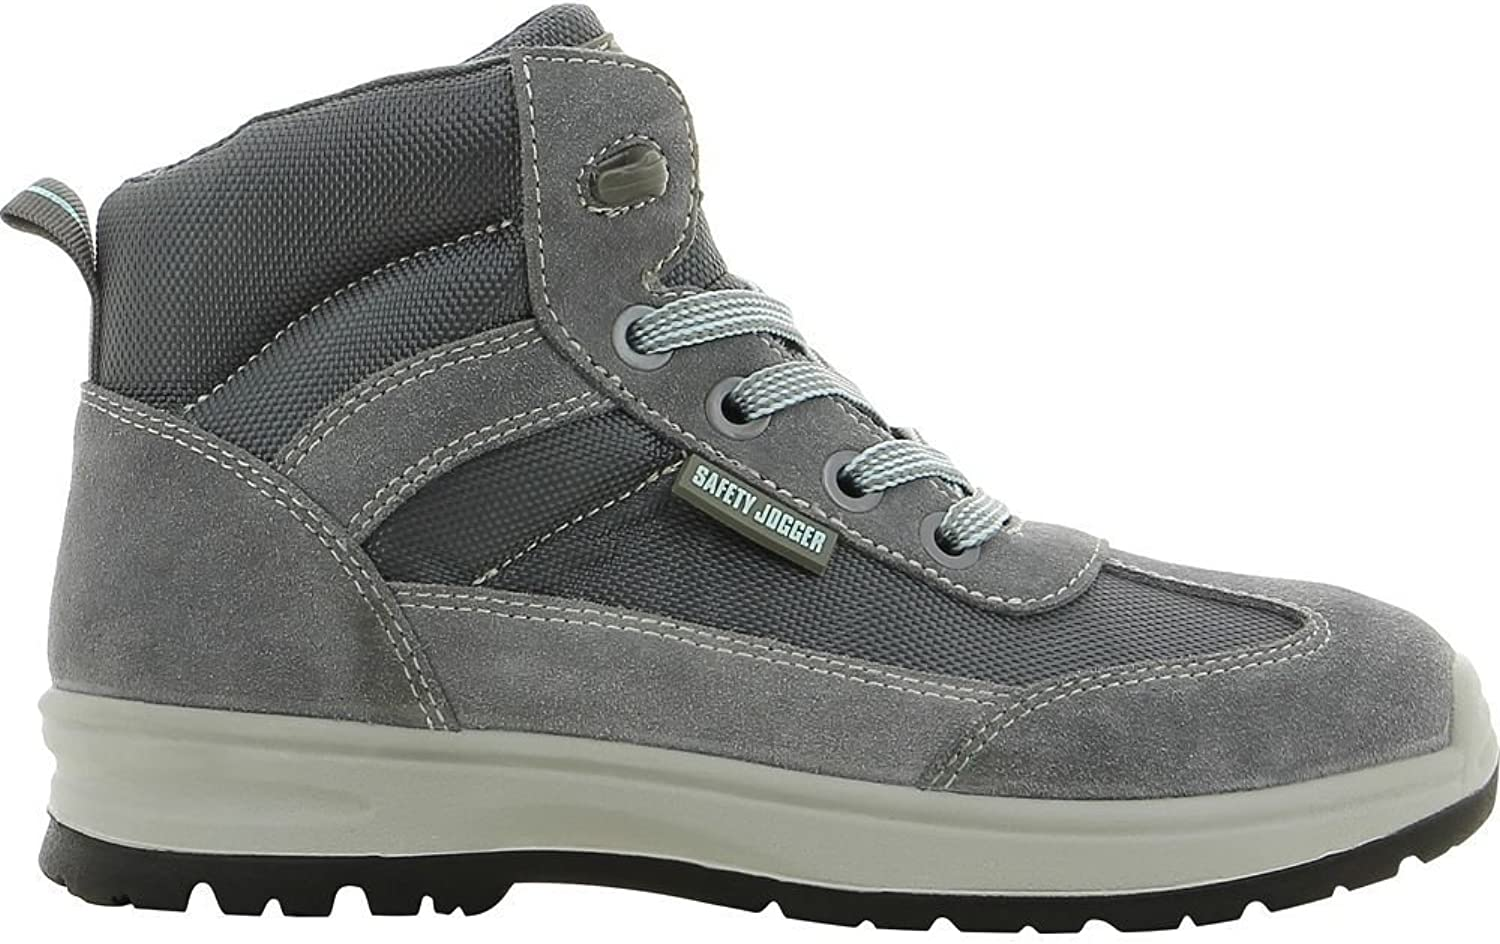 Safety Jogger 200161-37 shoes, Organic  S1P, Size 4, grey